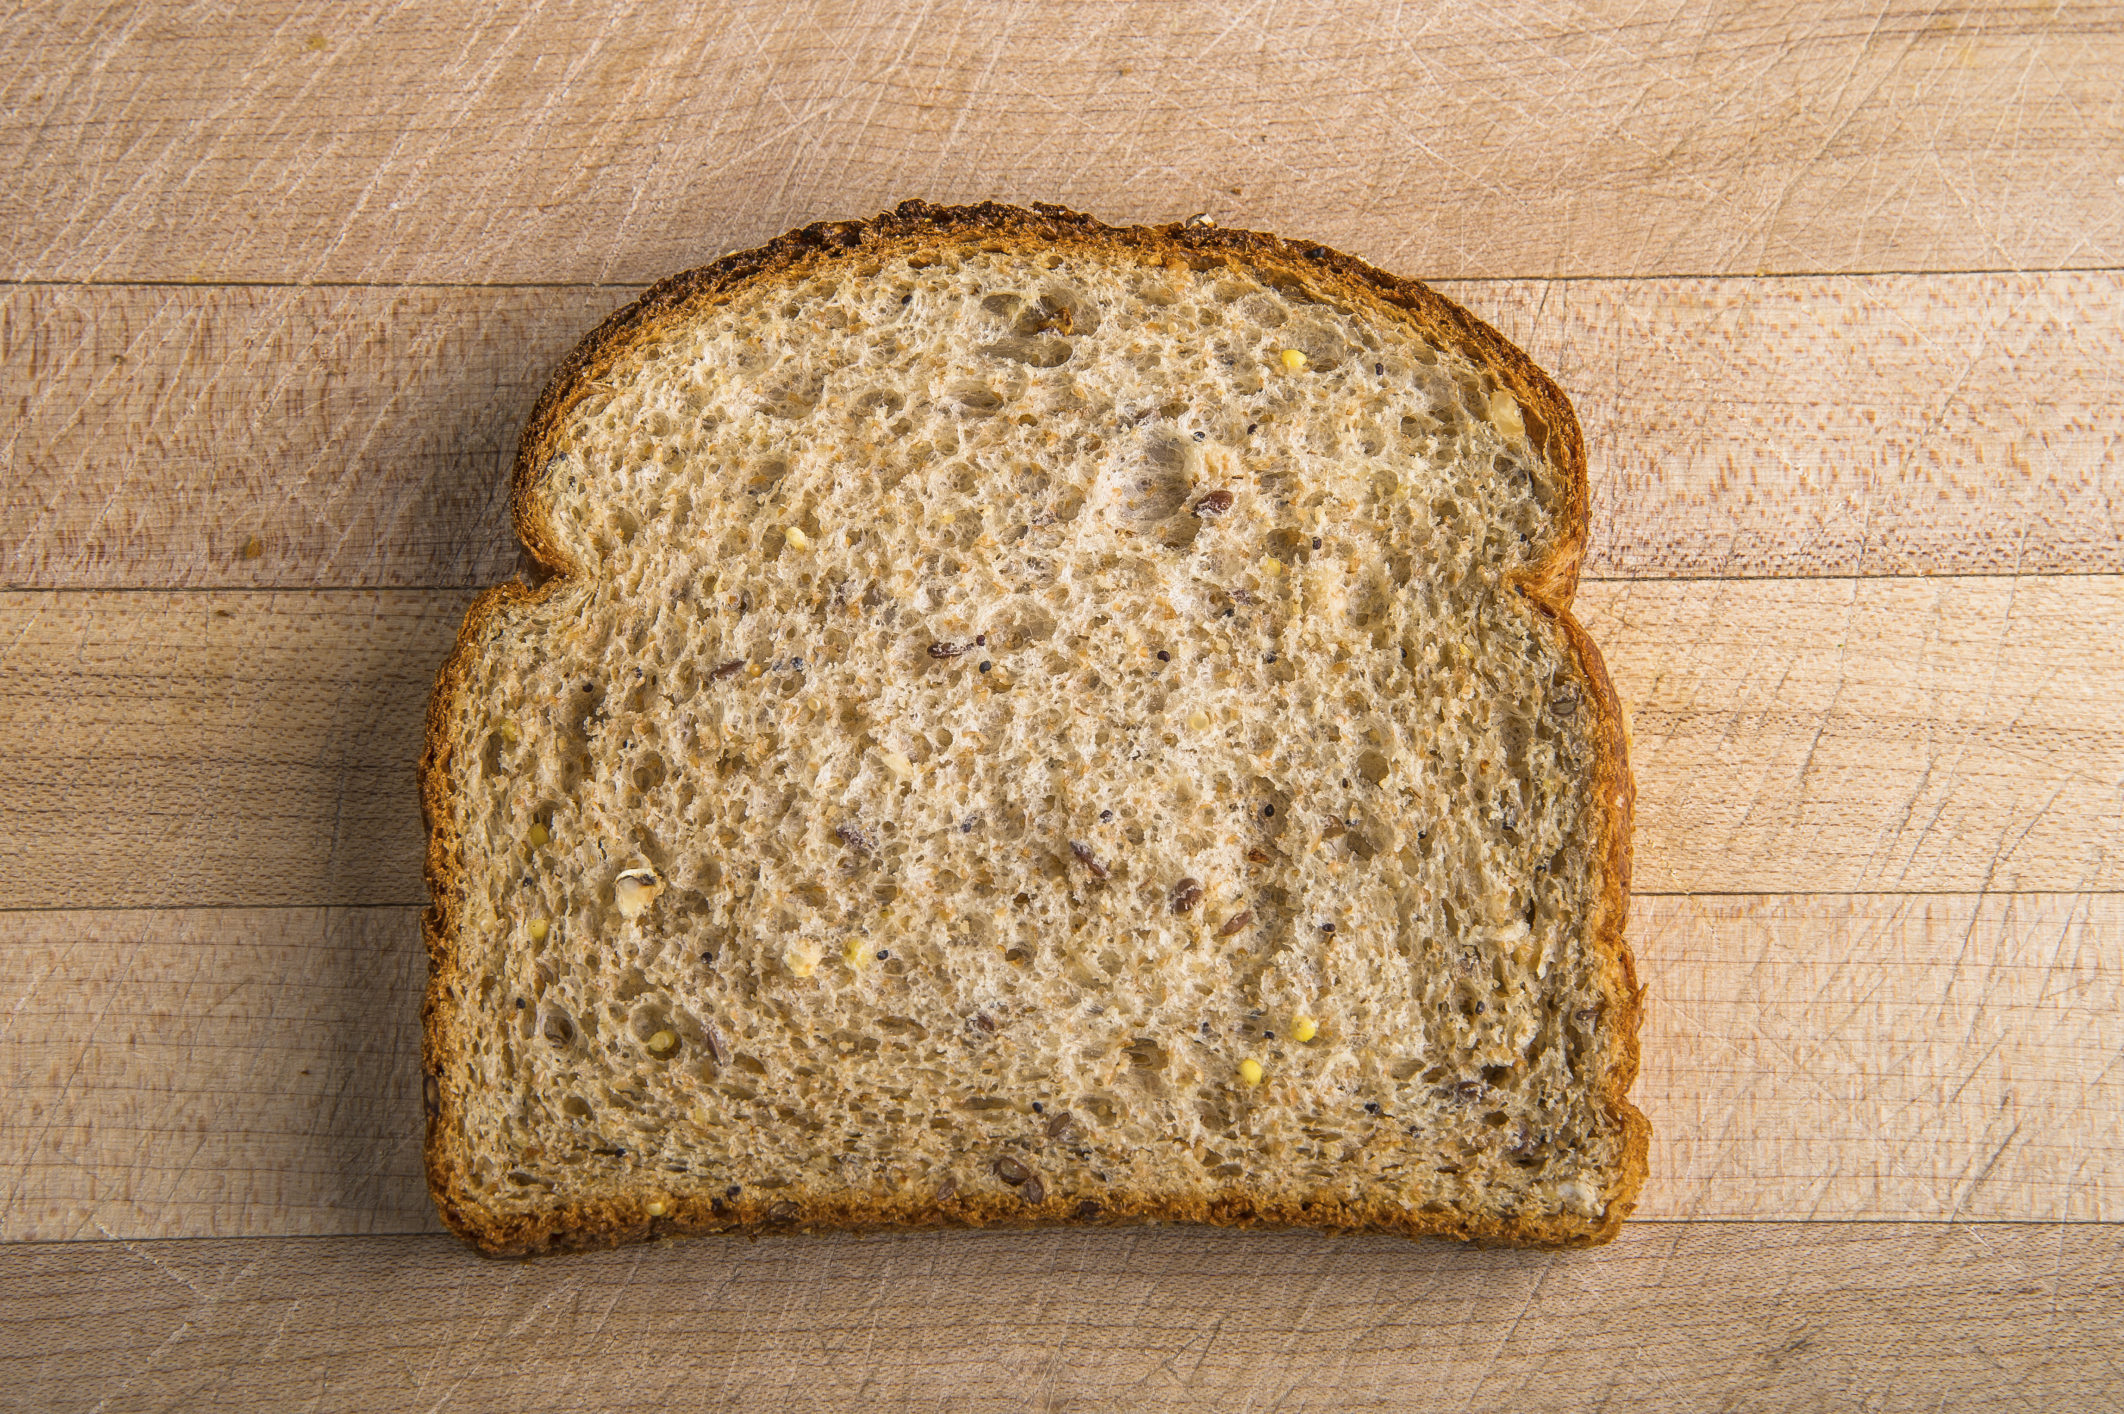 The Bread Diet!! Yes, I actually said